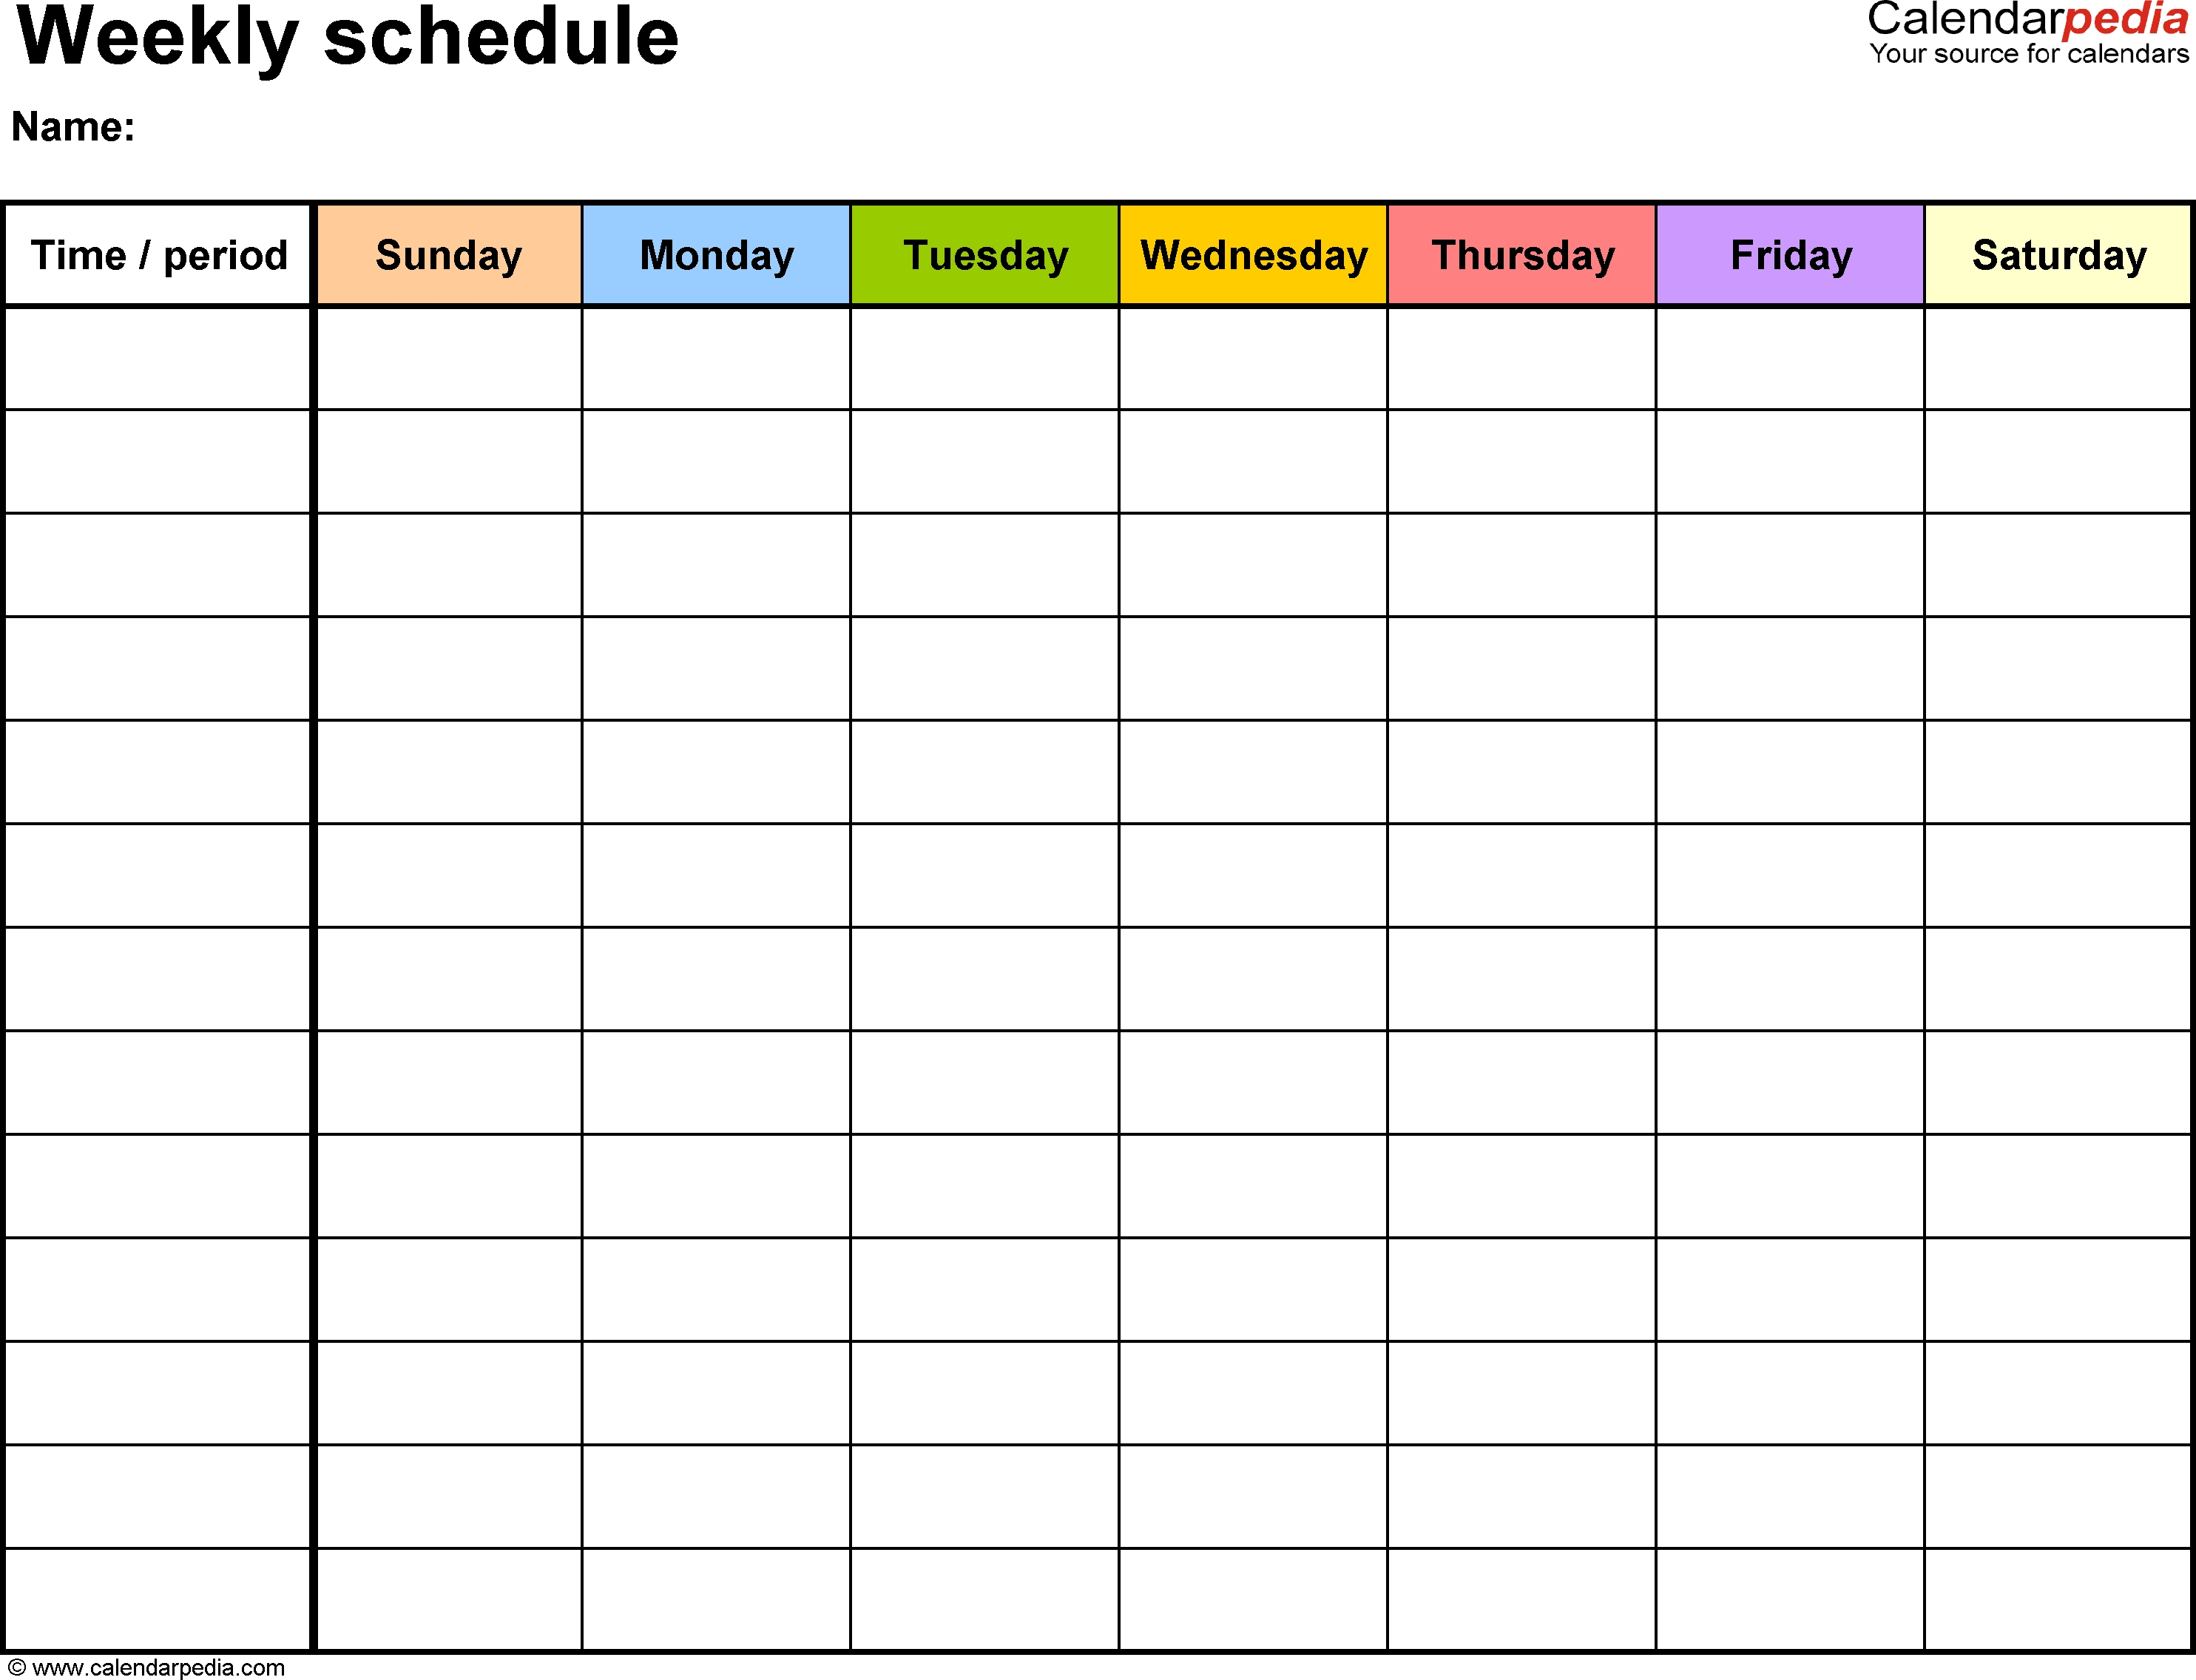 Free Weekly Schedule Templates For Excel - 18 Templates | ~Yoga inside Blank Weekly Calendar Print Outs